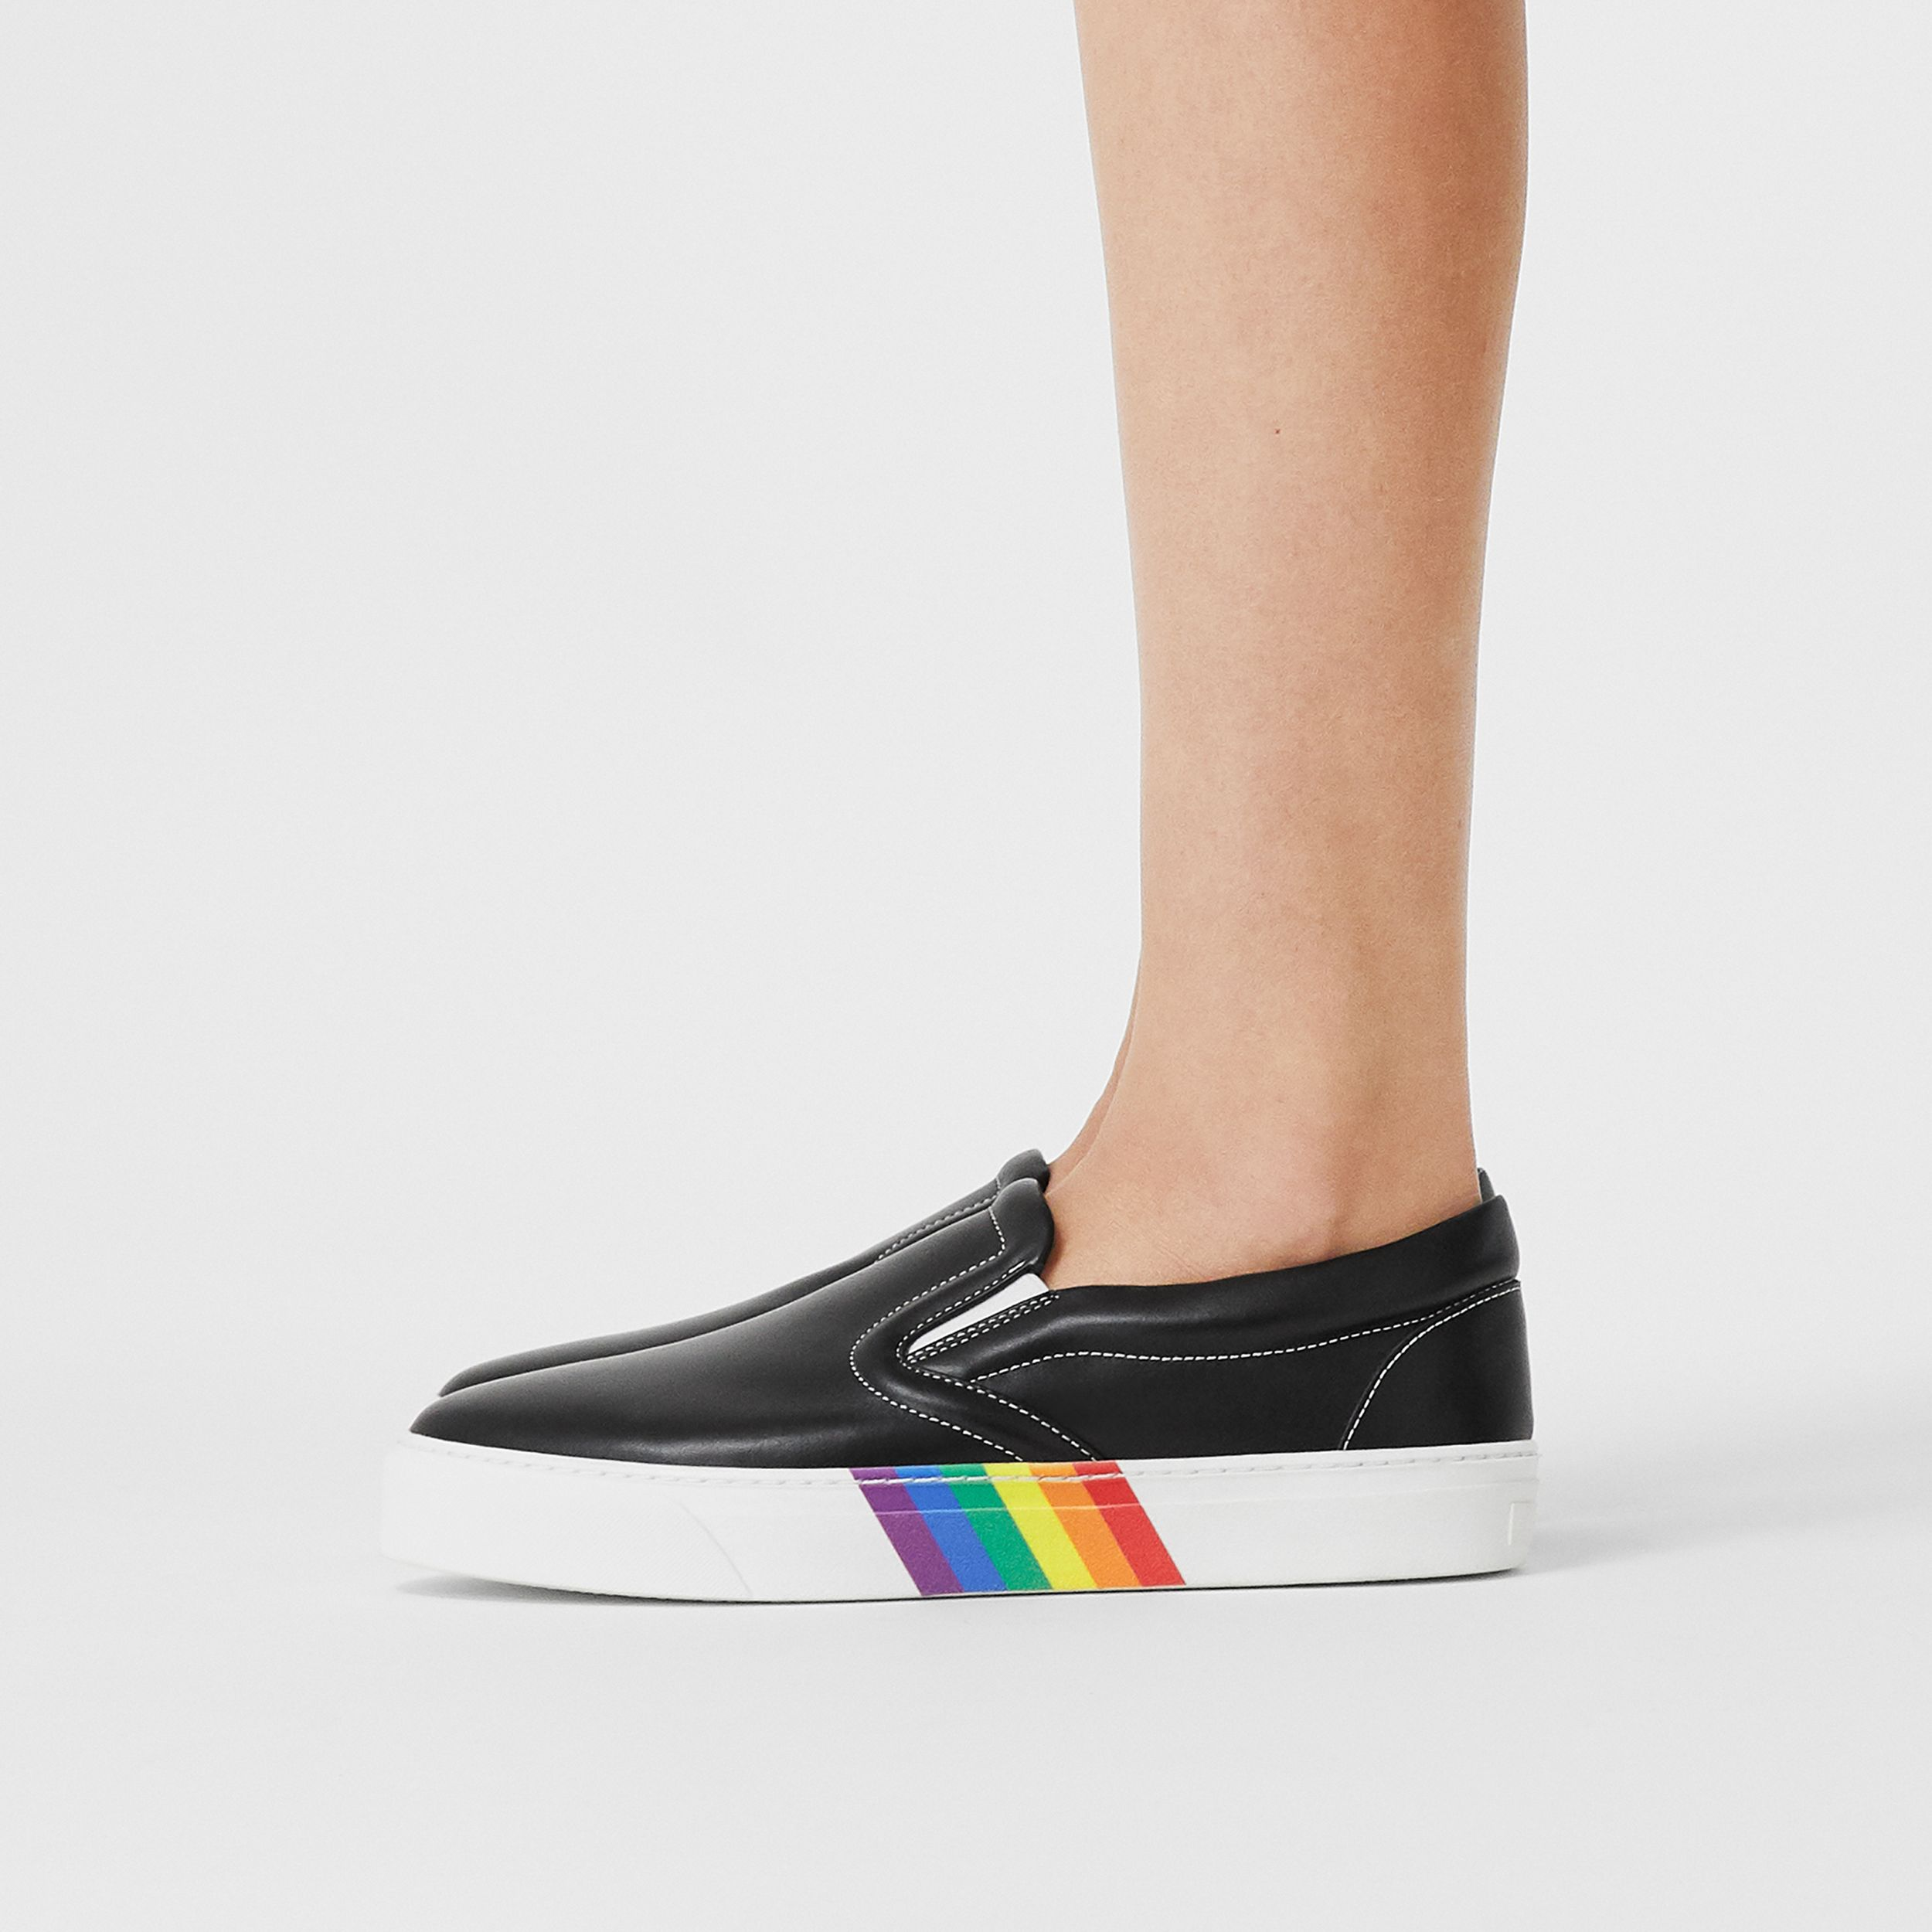 Bio-based Sole Leather Slip-on Sneakers in Black - Women | Burberry - 3